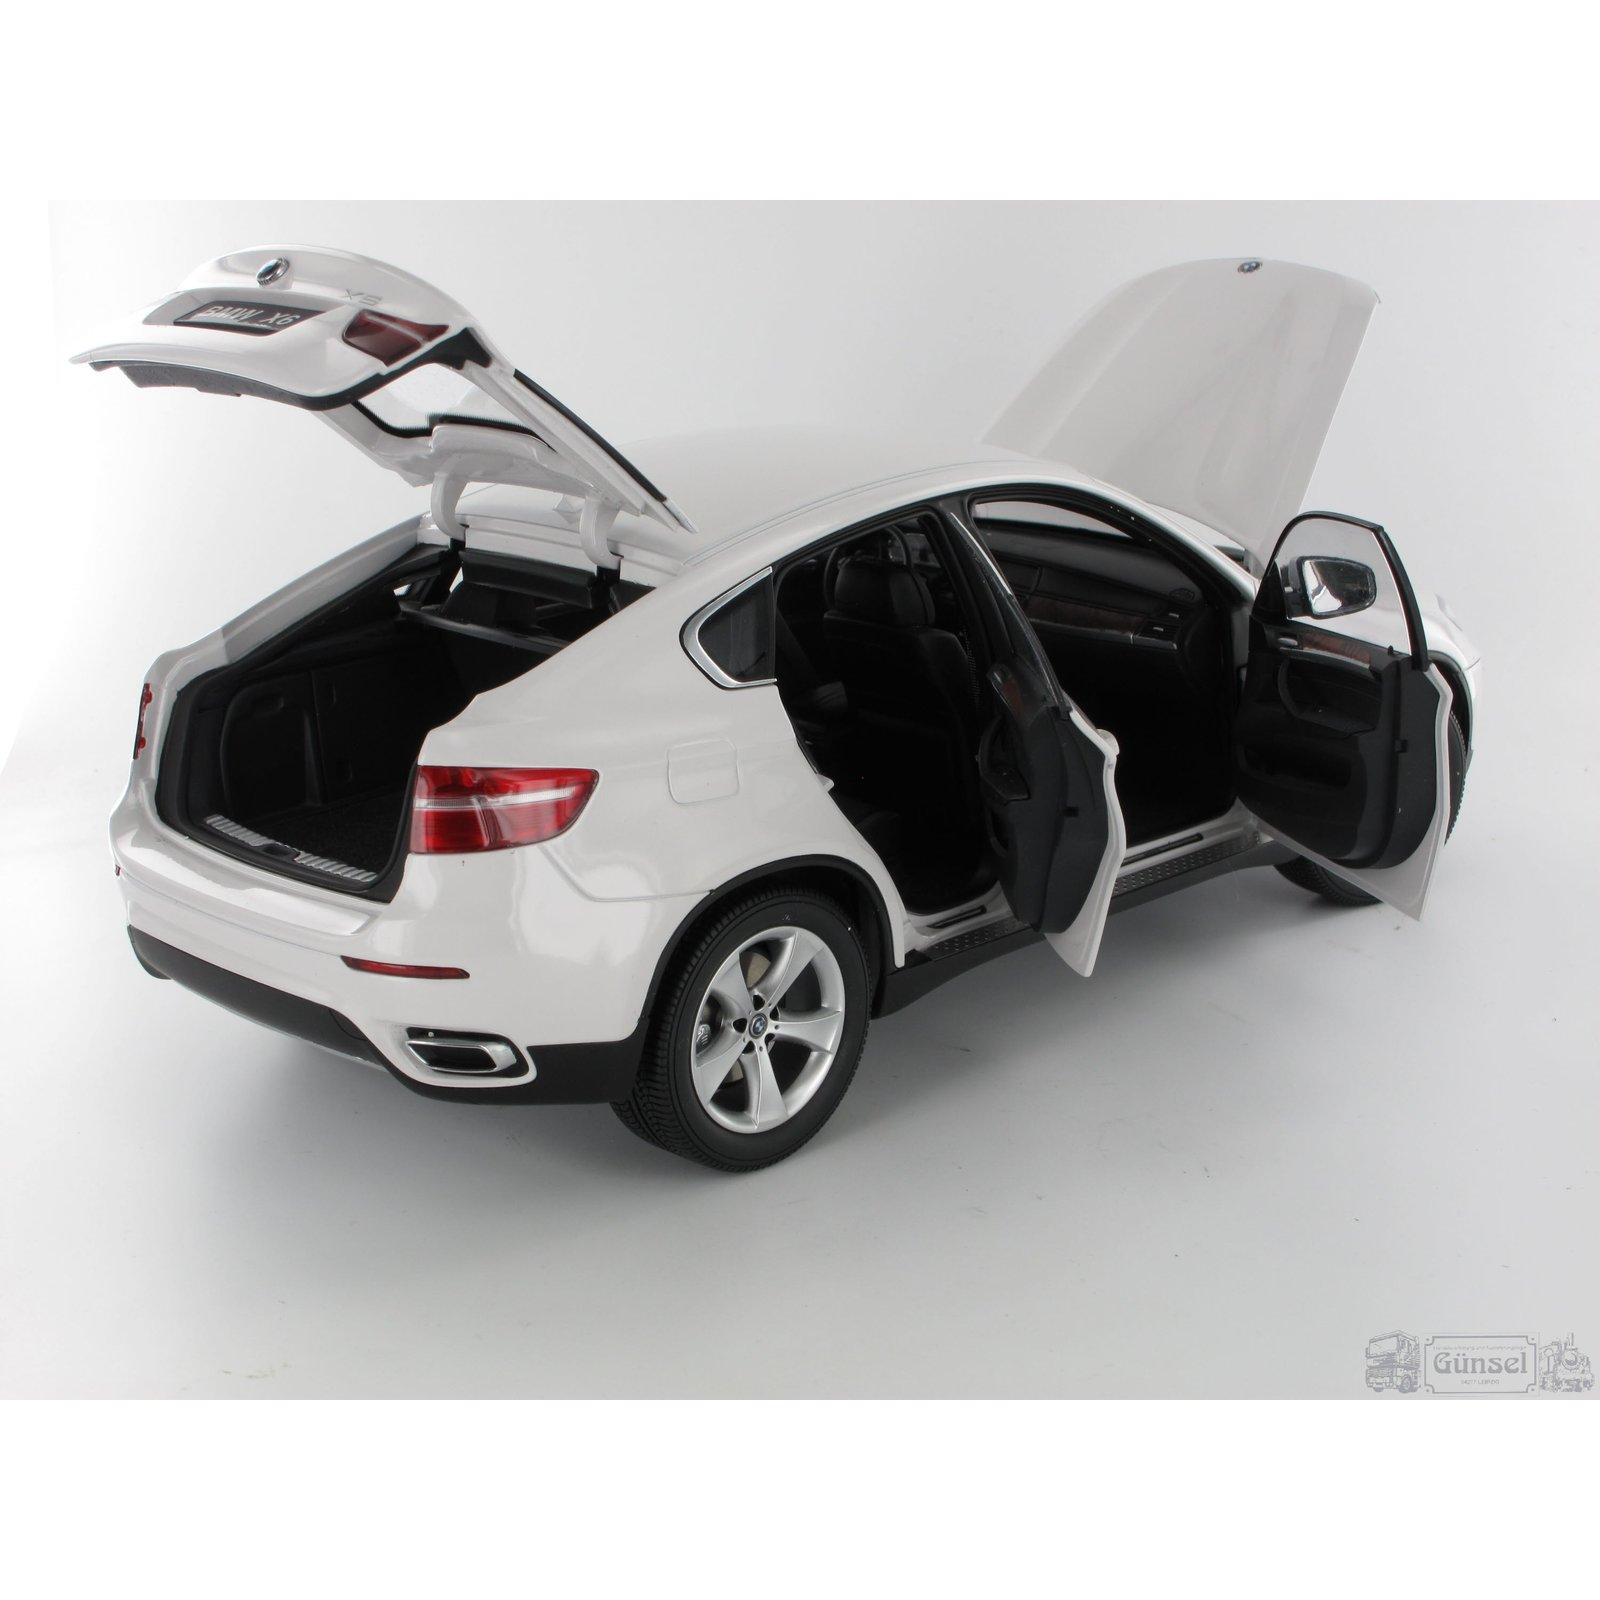 kyosho kyo8761w0 bmw x6 xdrve50i wei massstab 1 18. Black Bedroom Furniture Sets. Home Design Ideas